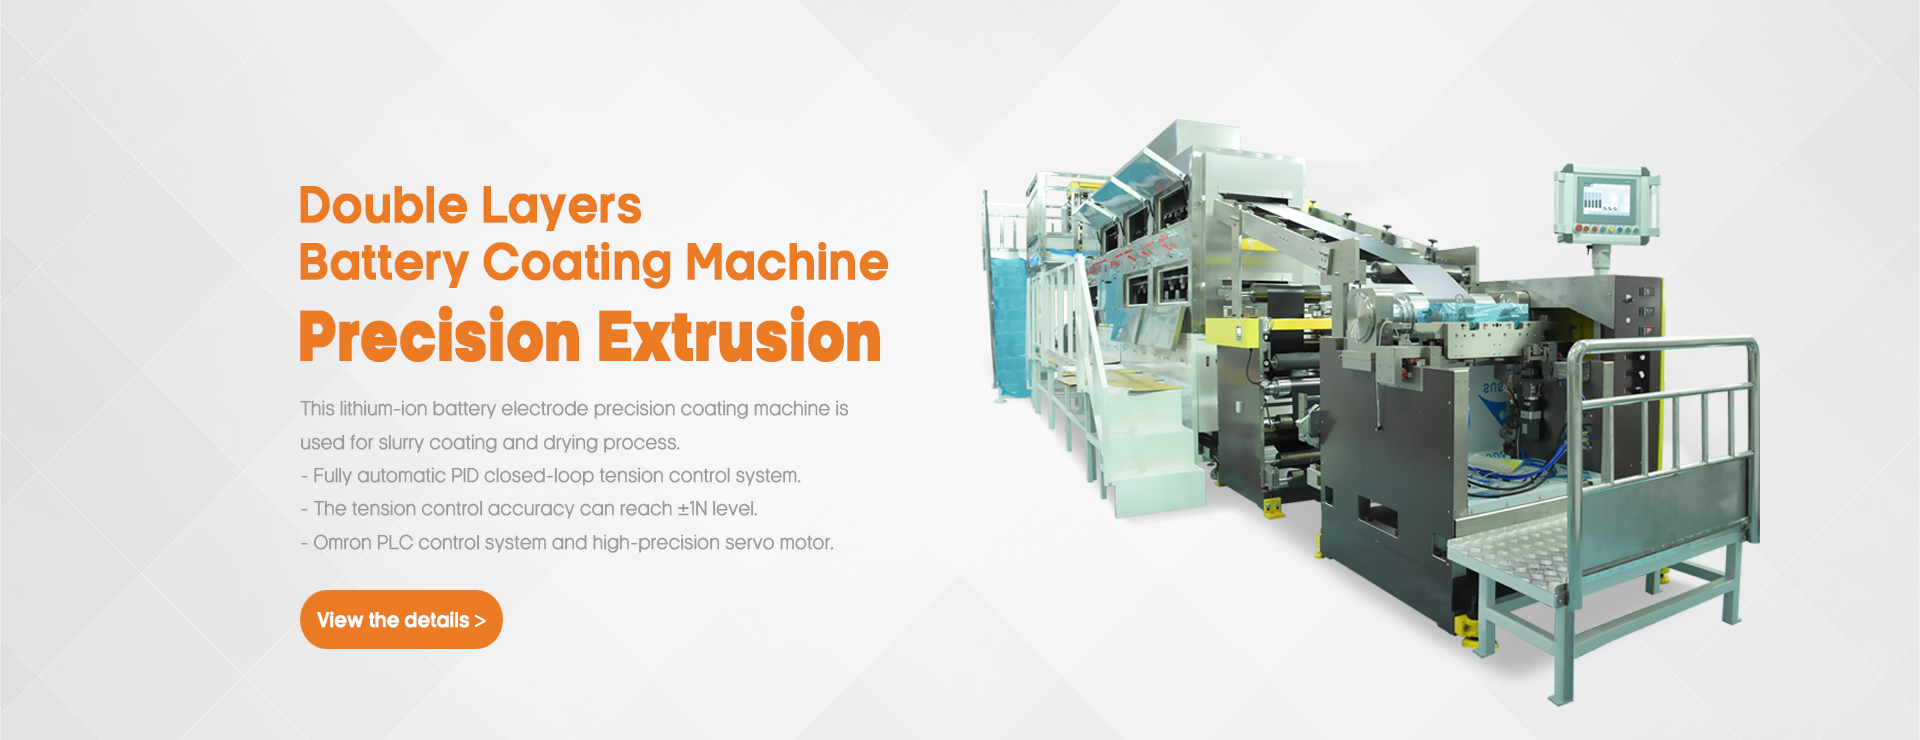 Double Layers Extrusion Coating Machine